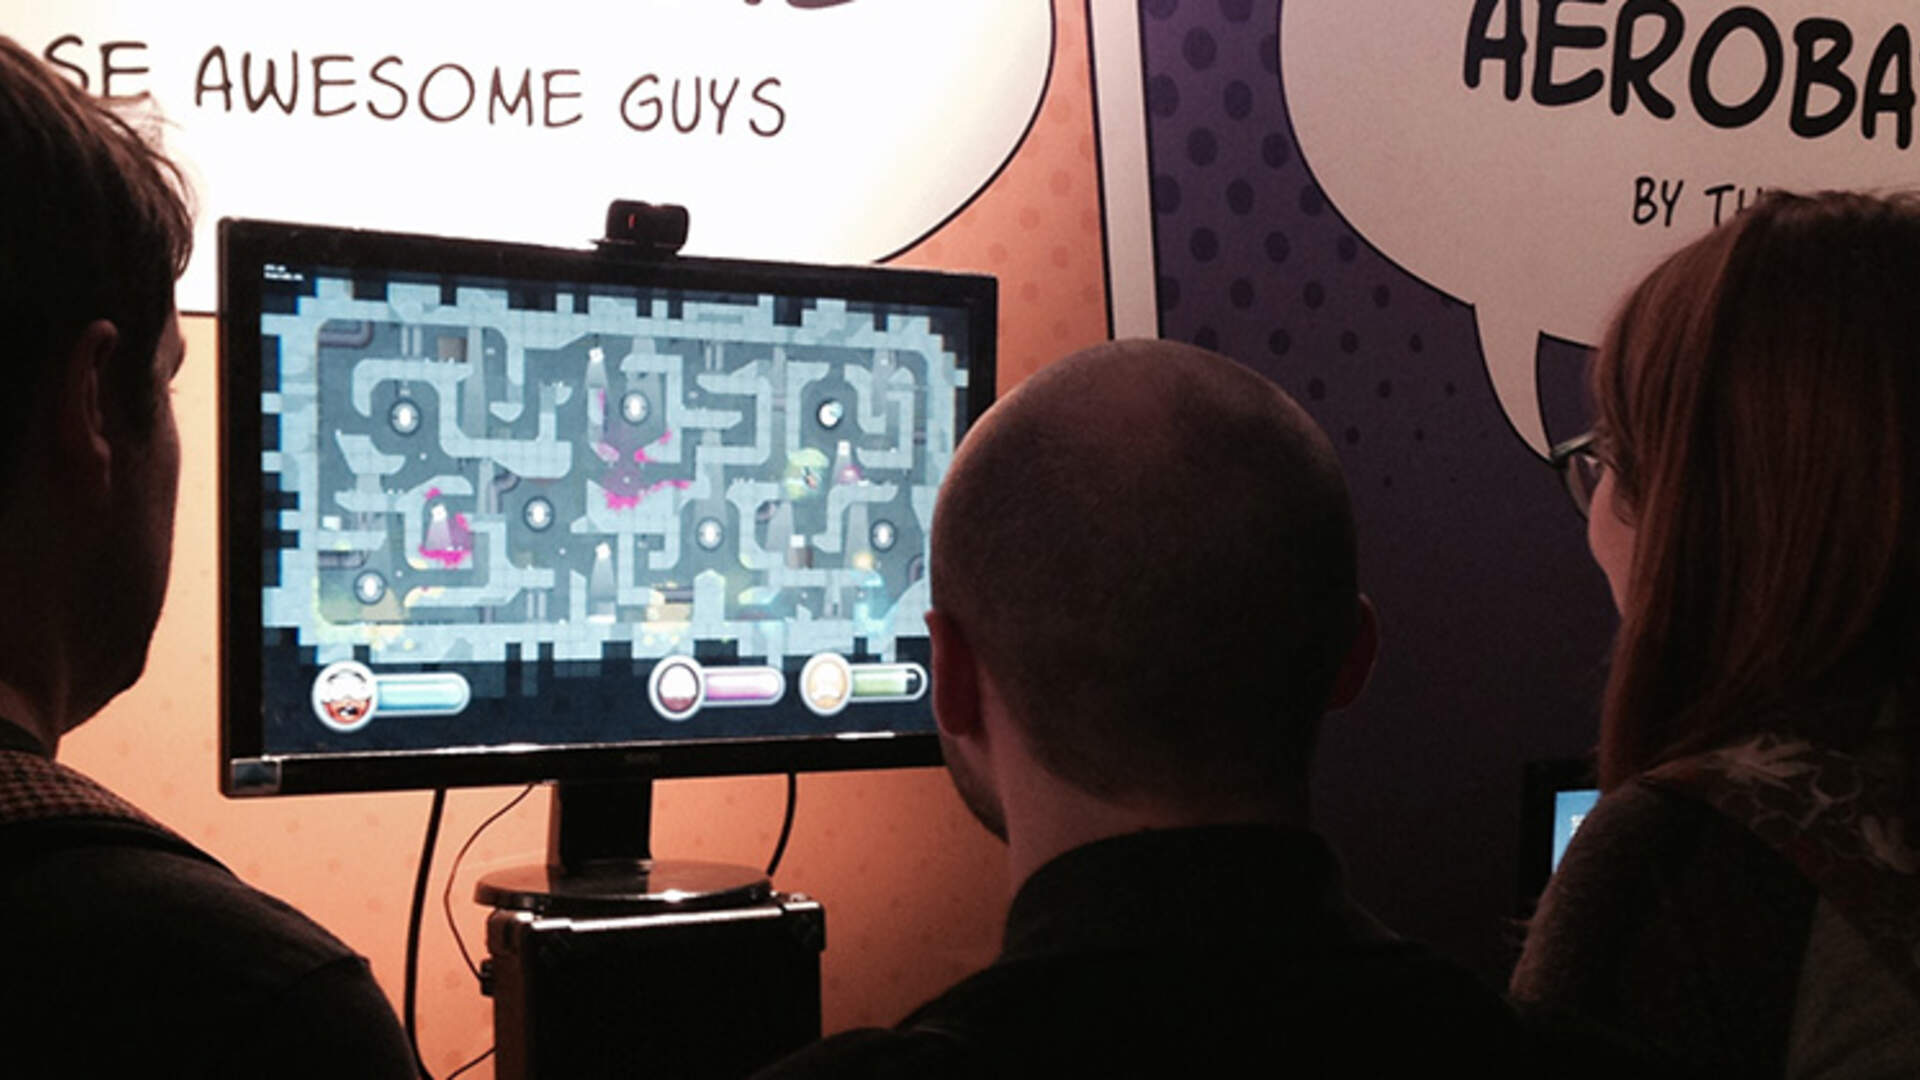 With Indies More Prevalent Than Ever, the Indie Megabooth Finds New Ways to Evangelize